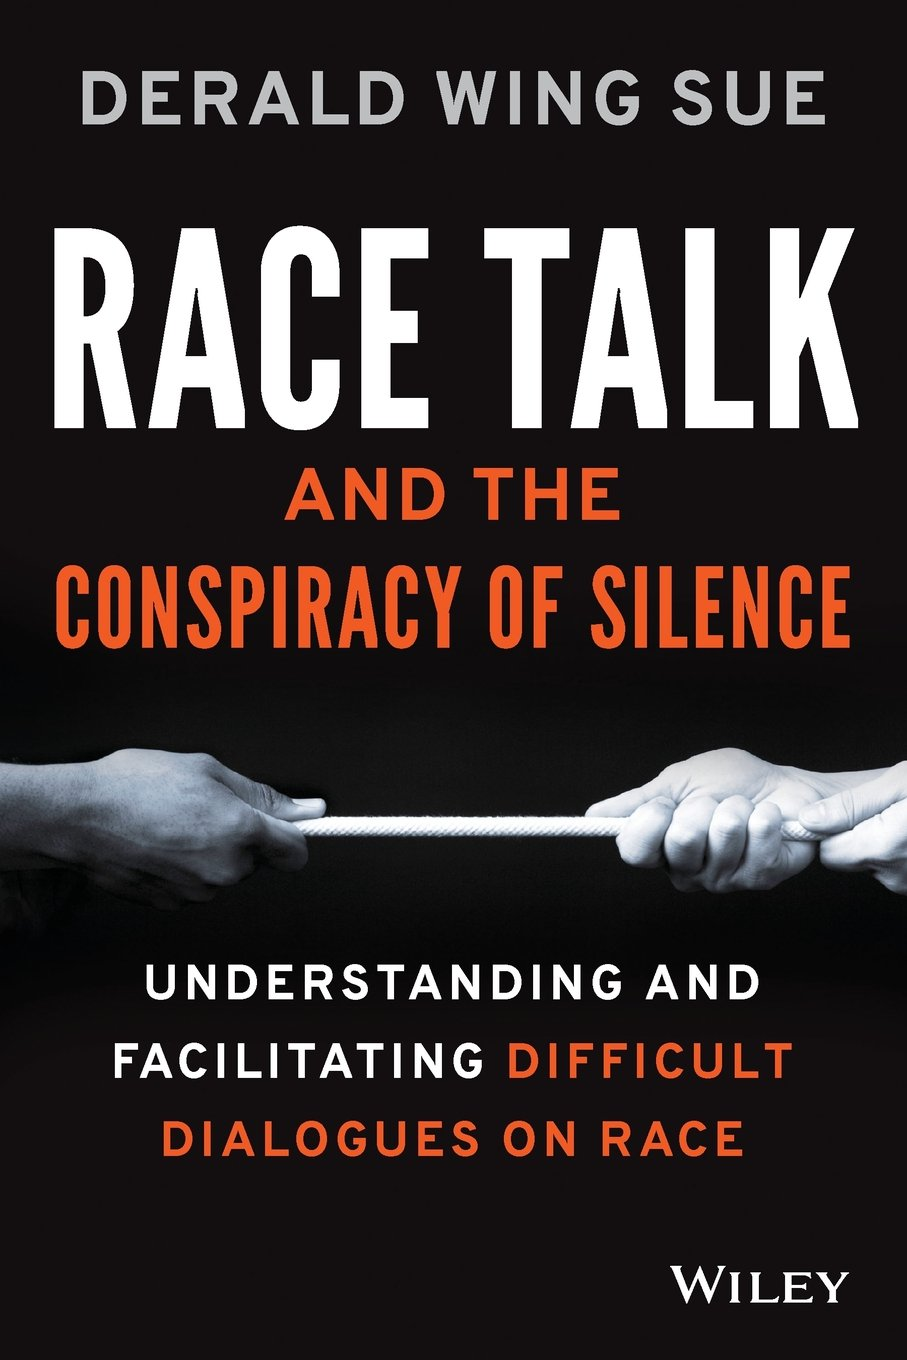 Image OfRace Talk And The Conspiracy Of Silence: Understanding And Facilitating Difficult Dialogues On Race